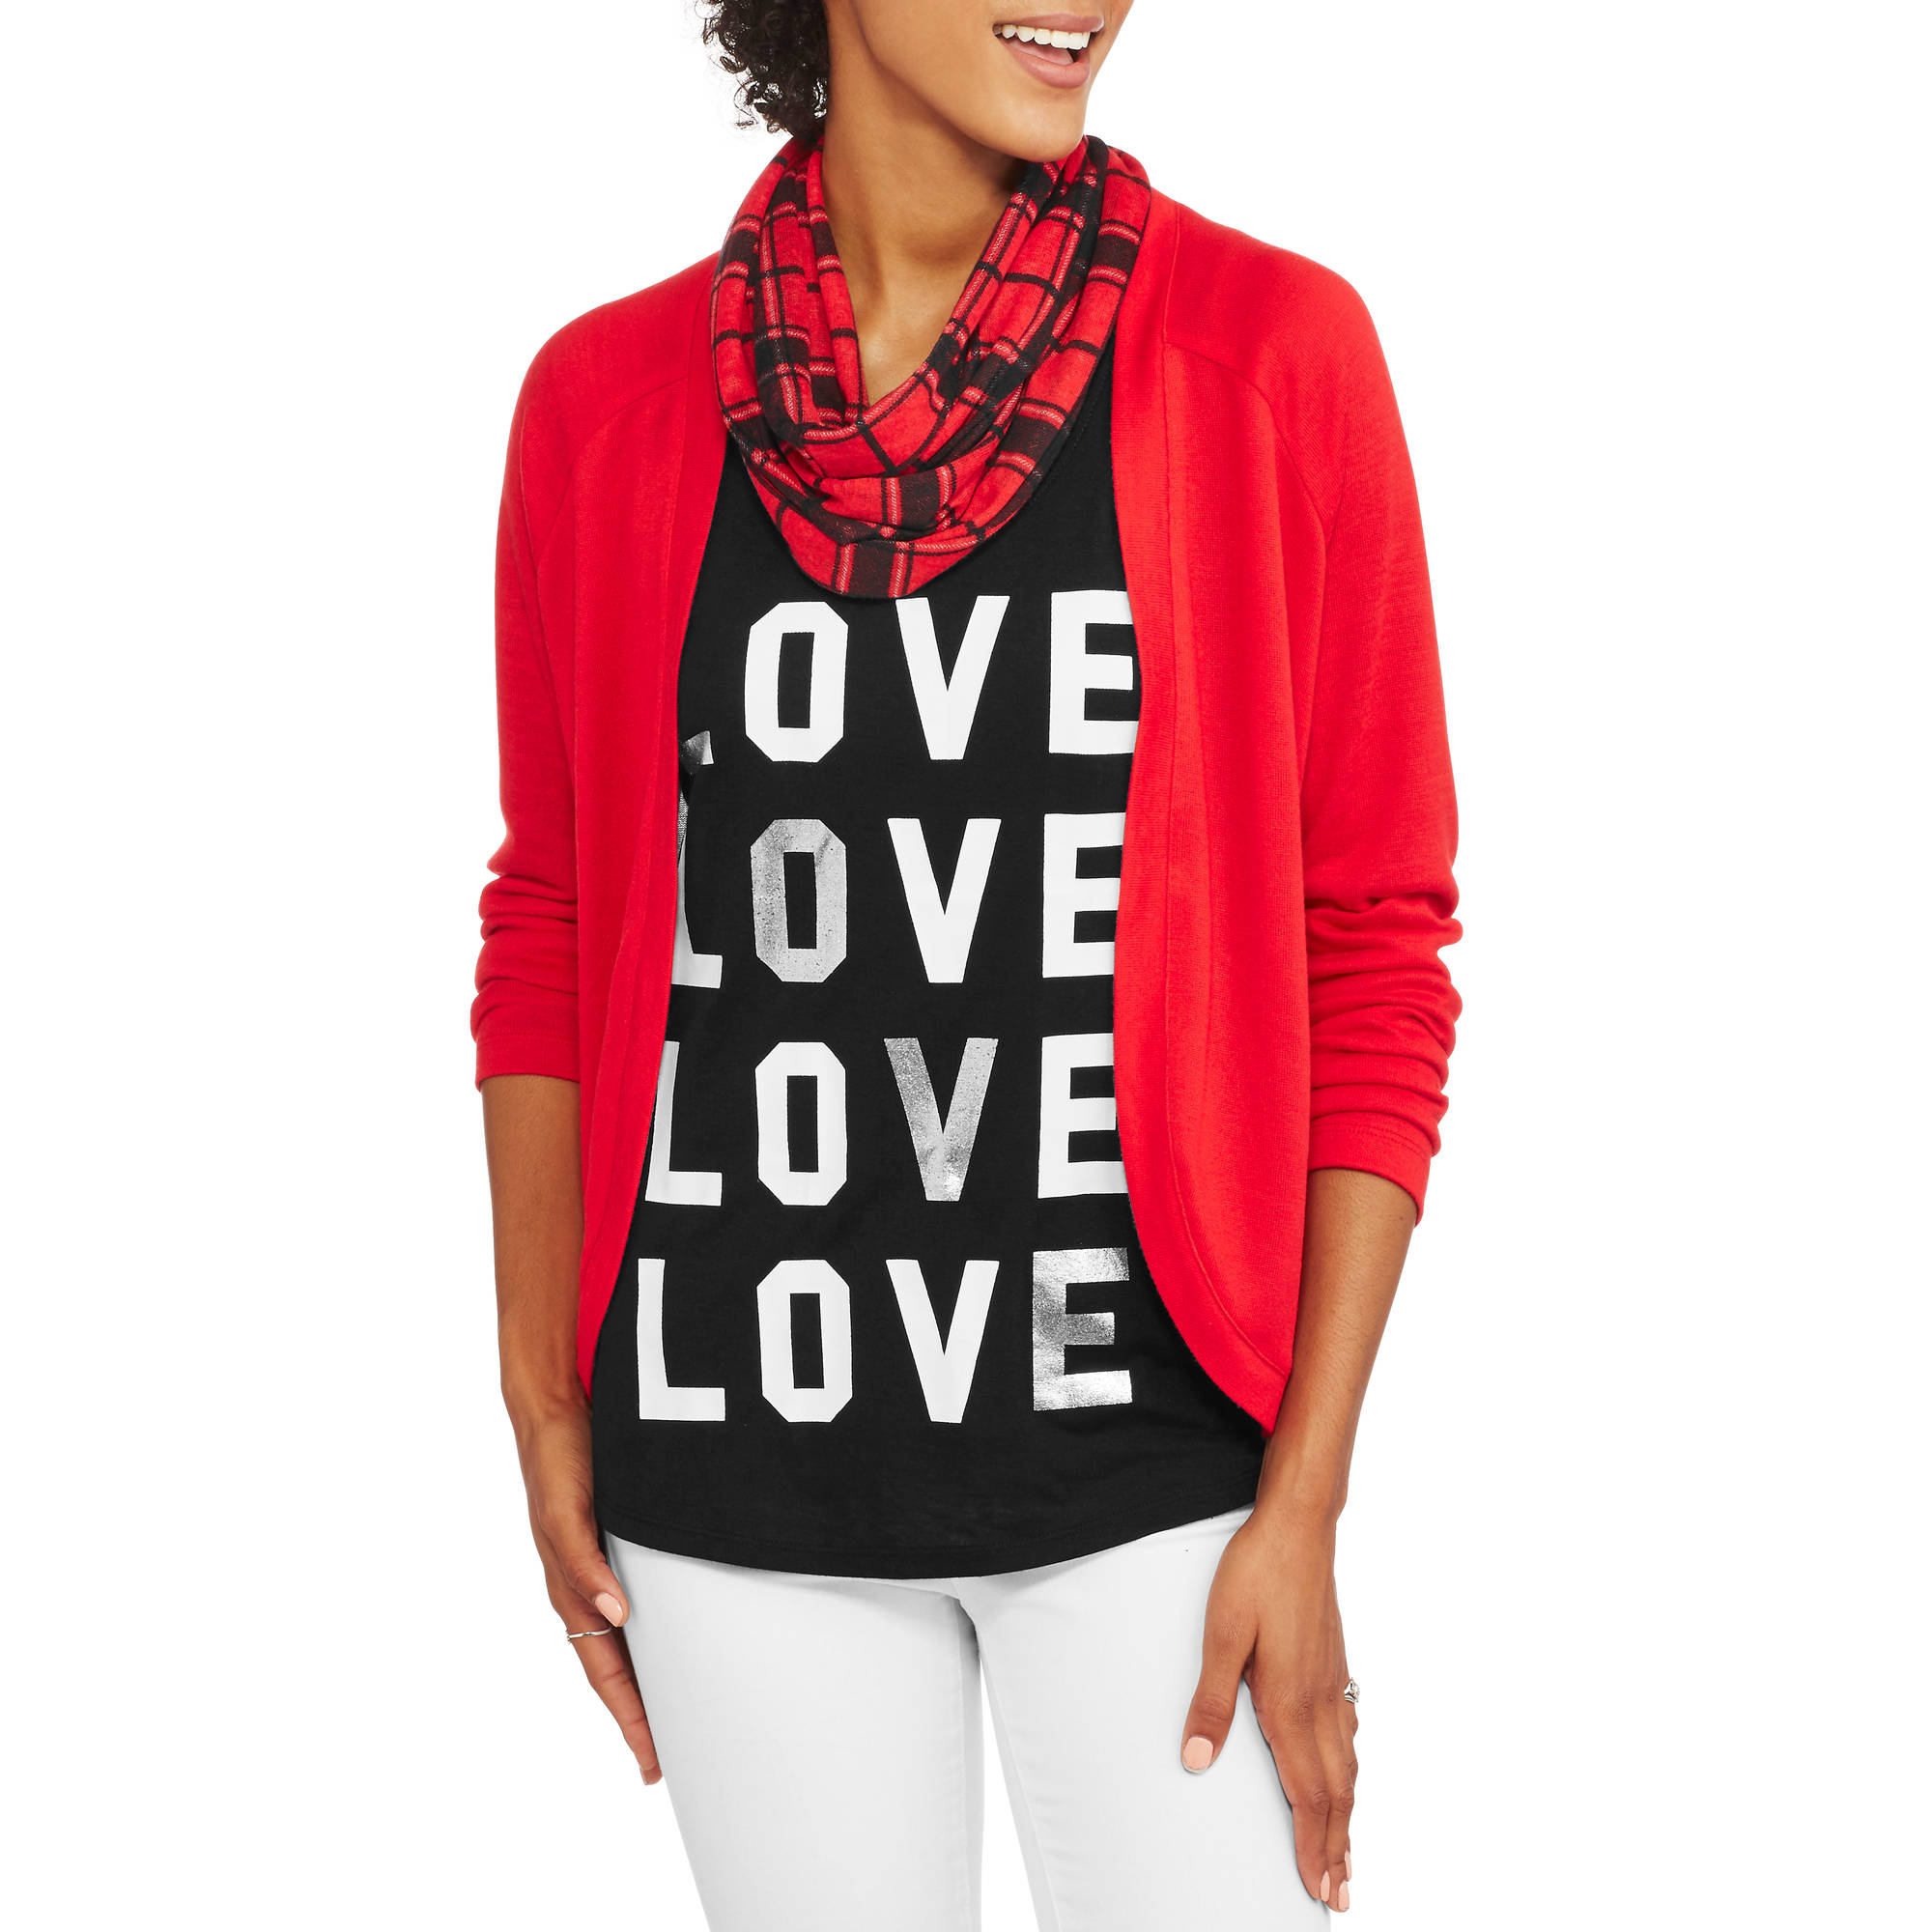 No Boundaries Juniors' Cozy Cardigan, Graphic Tank & Scarf 3Fer